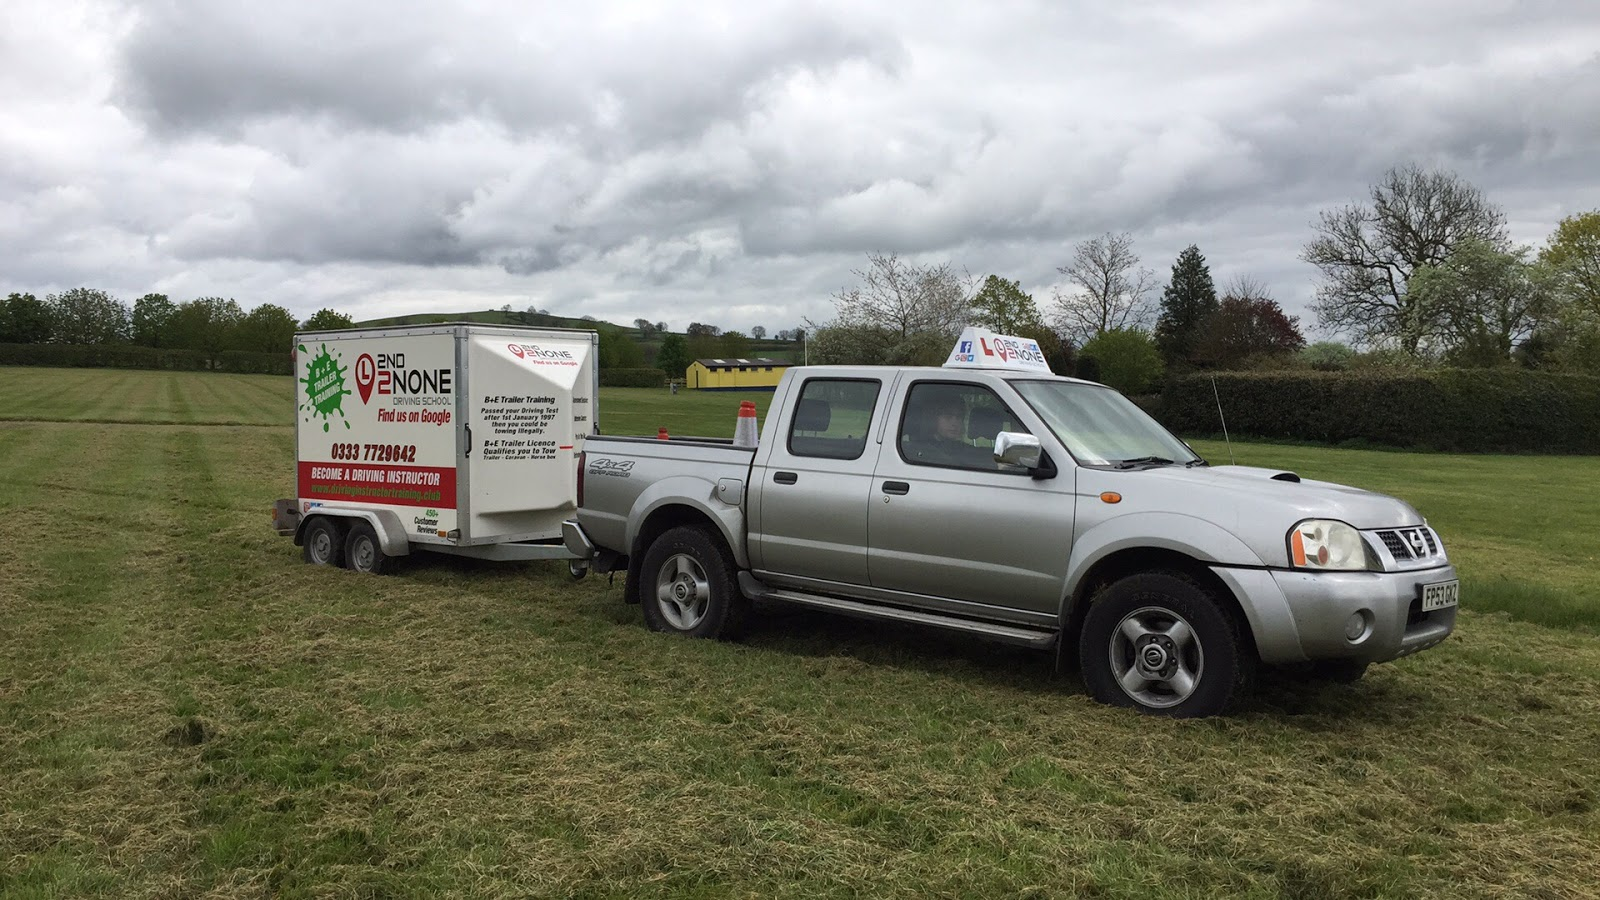 Pre-17 Driving Tuition at The Royal Bath & West Showground